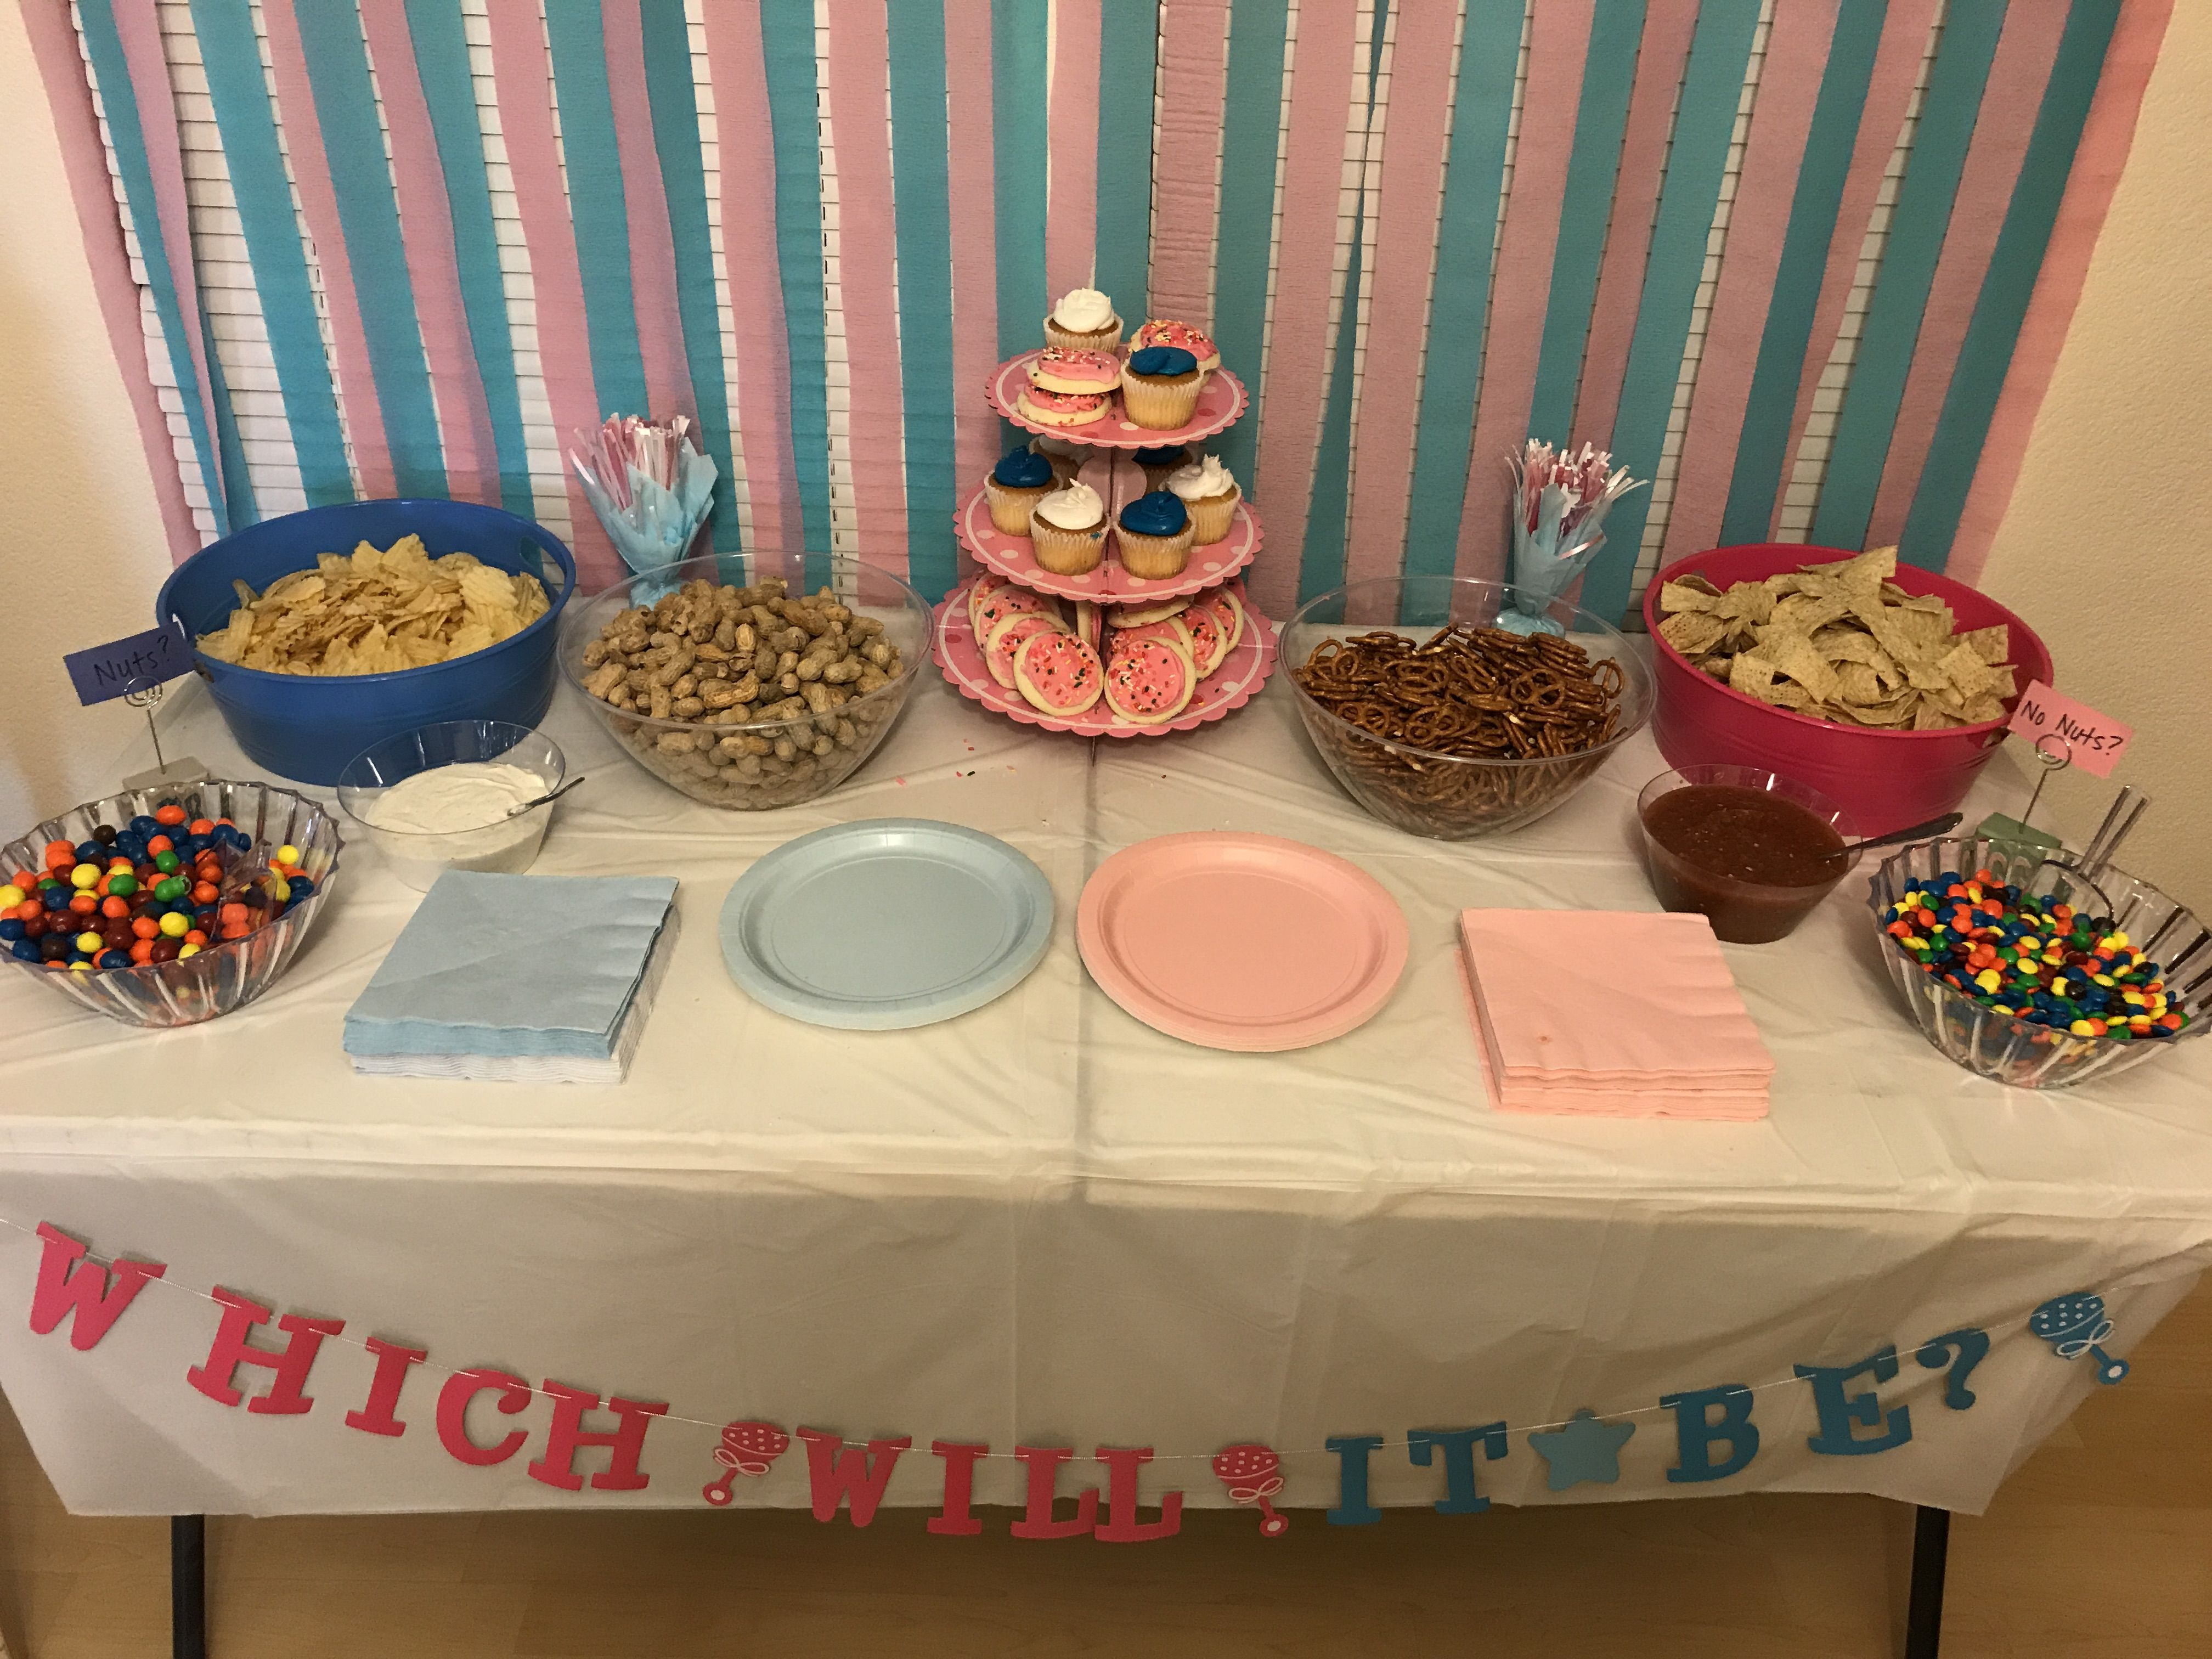 Gender Reveal Party Food Nuts Or No Nuts Gender Reveal Party Food Gender Reveal Cake Gender Reveal Party